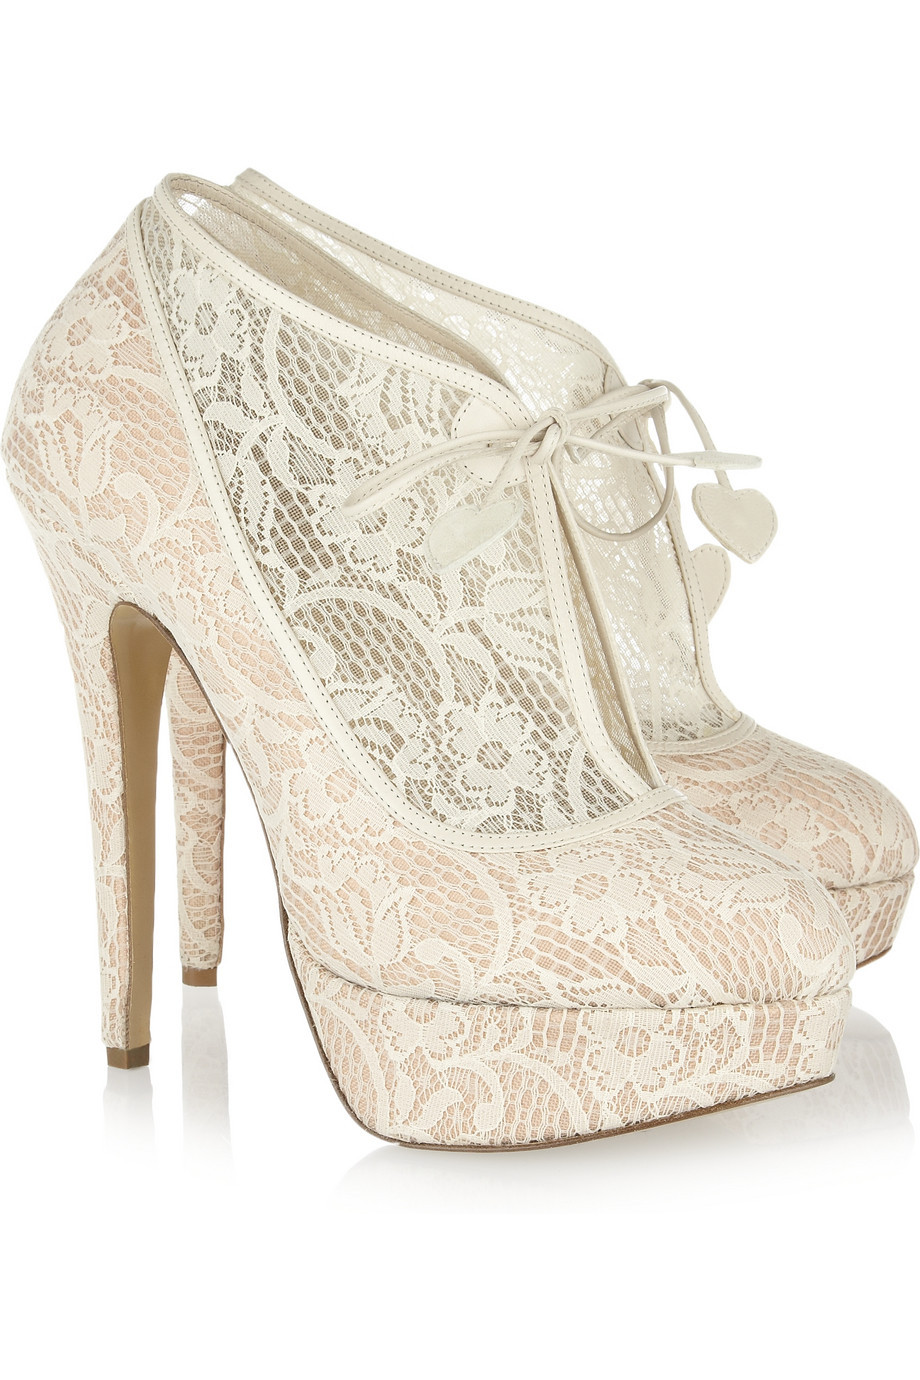 How about wedding boots rather than wedding shoes? These Charlotte Olympia beauties would work rather well! Photo Credit: Net A Porter